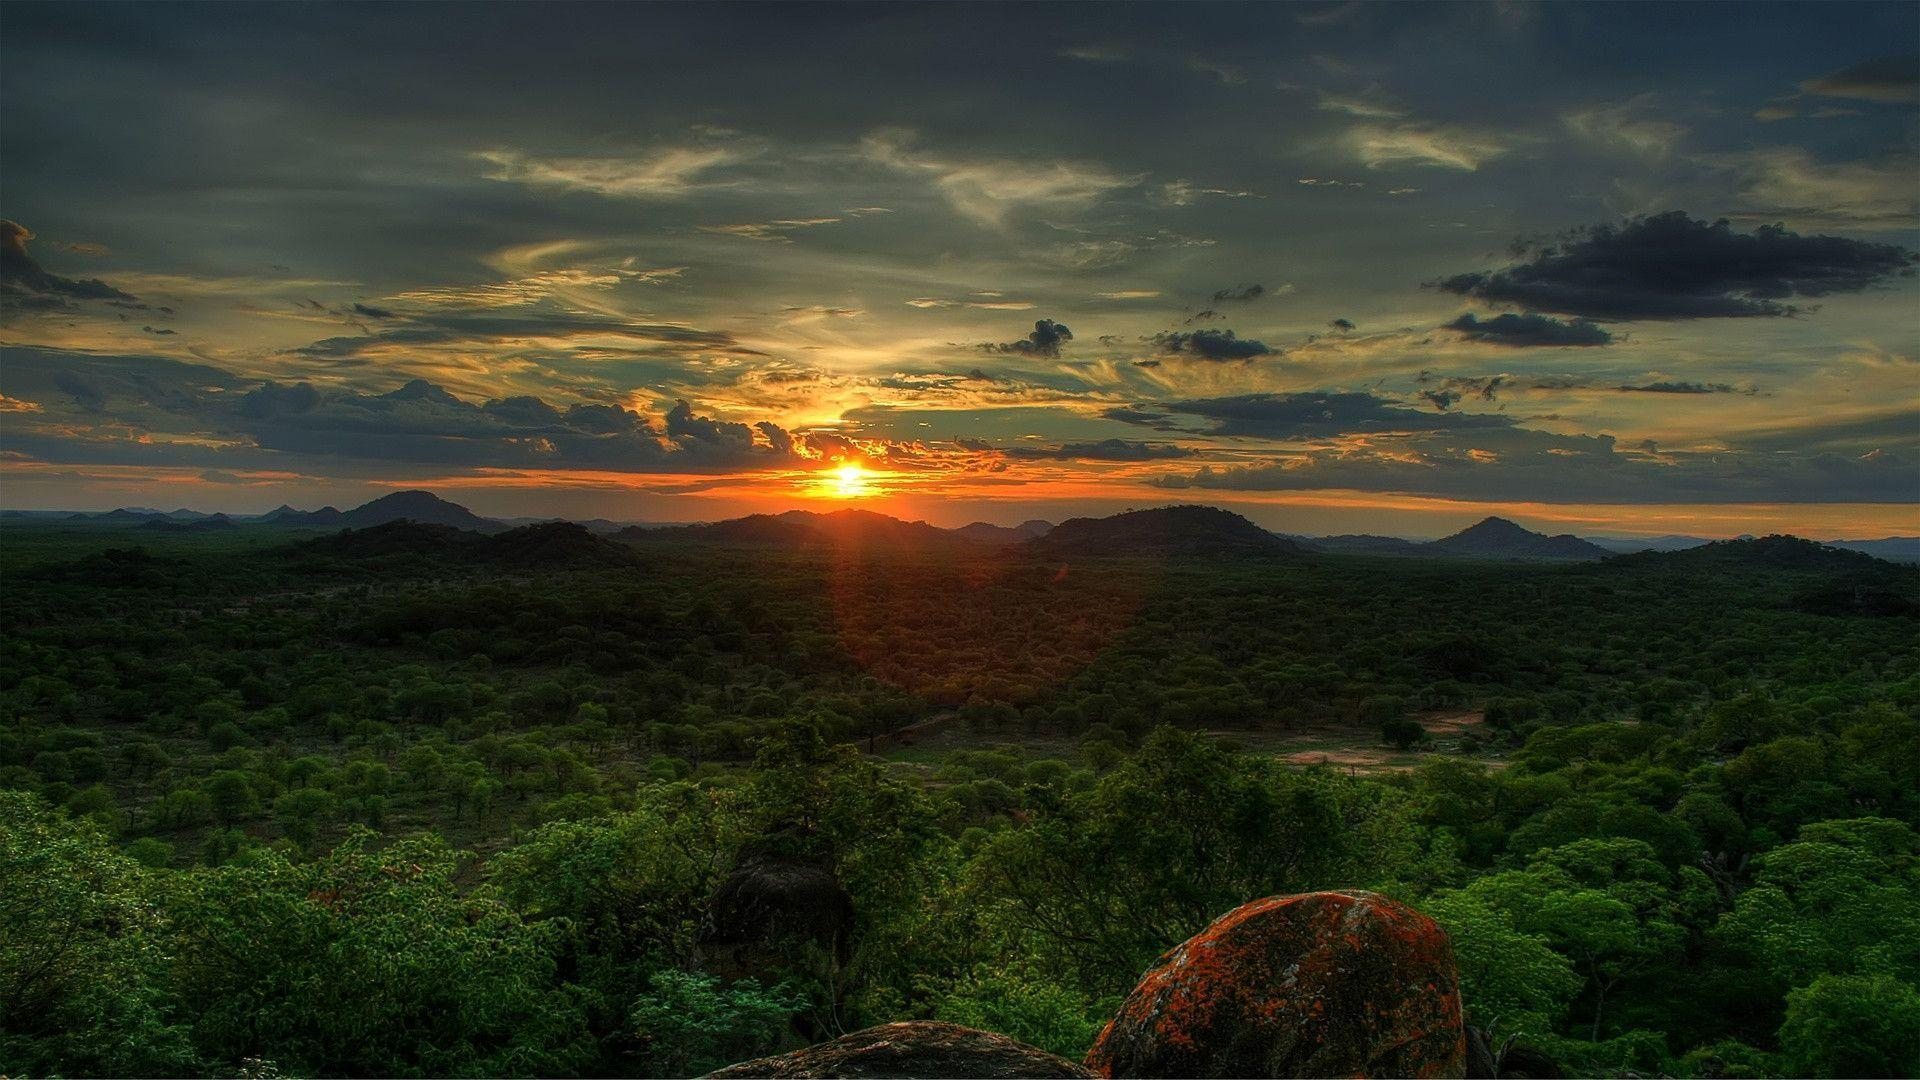 HD Sunset In Africa Wallpaper | Download Free - 64546